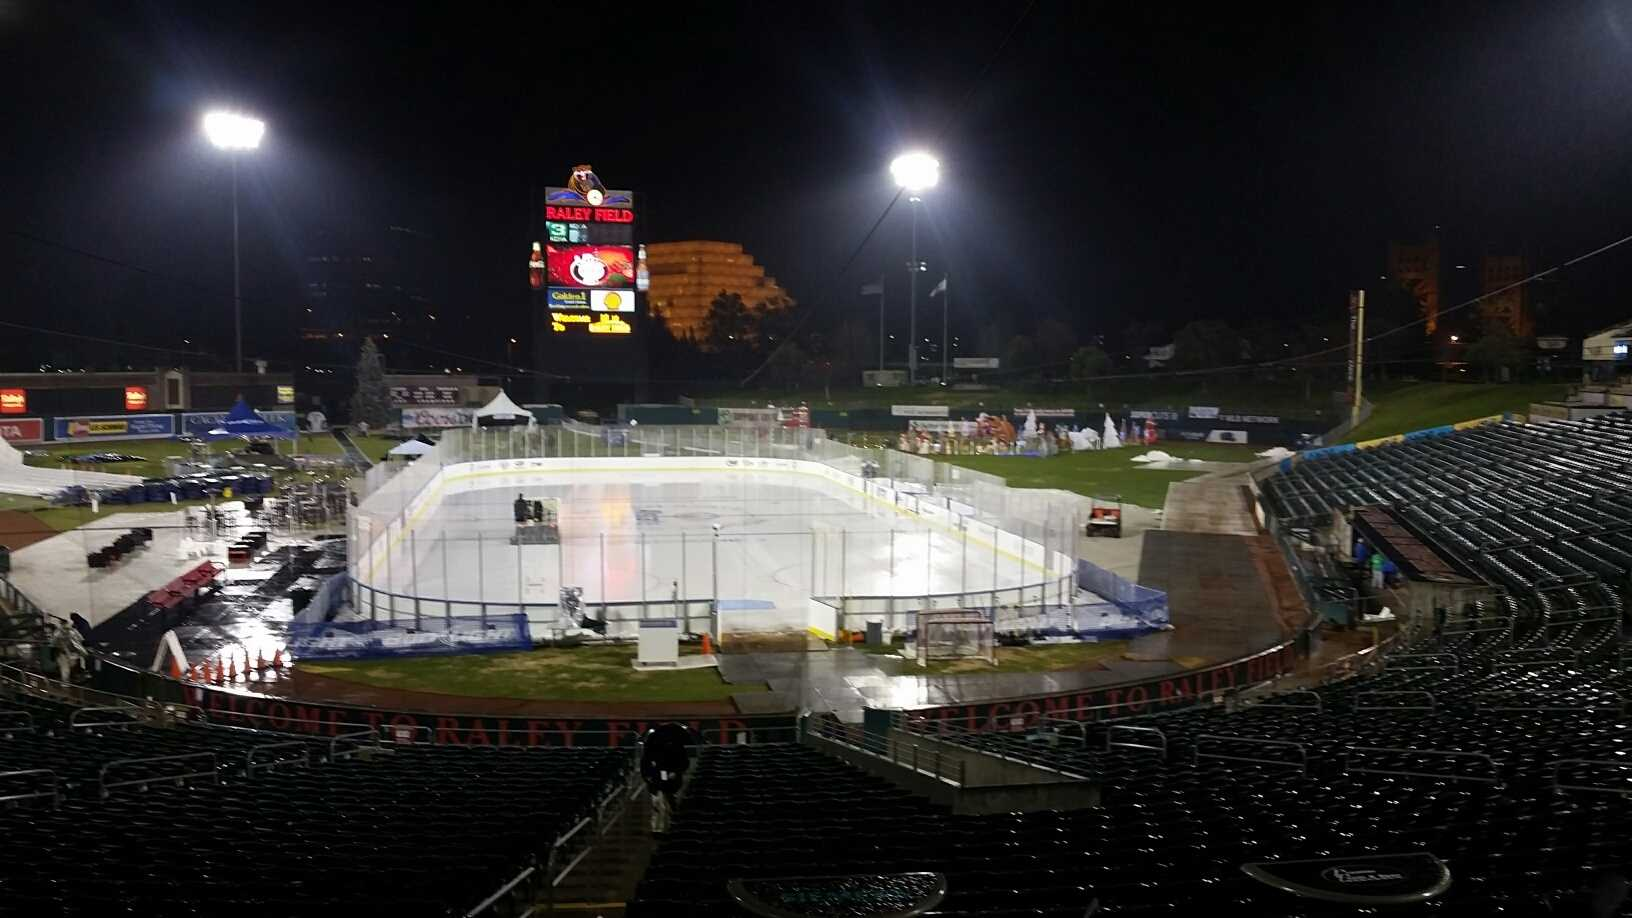 Water pooled onto the Raley Field ice rink on Friday, Dec. 18, 2015, after a rain storm moved through the Sacramento area.